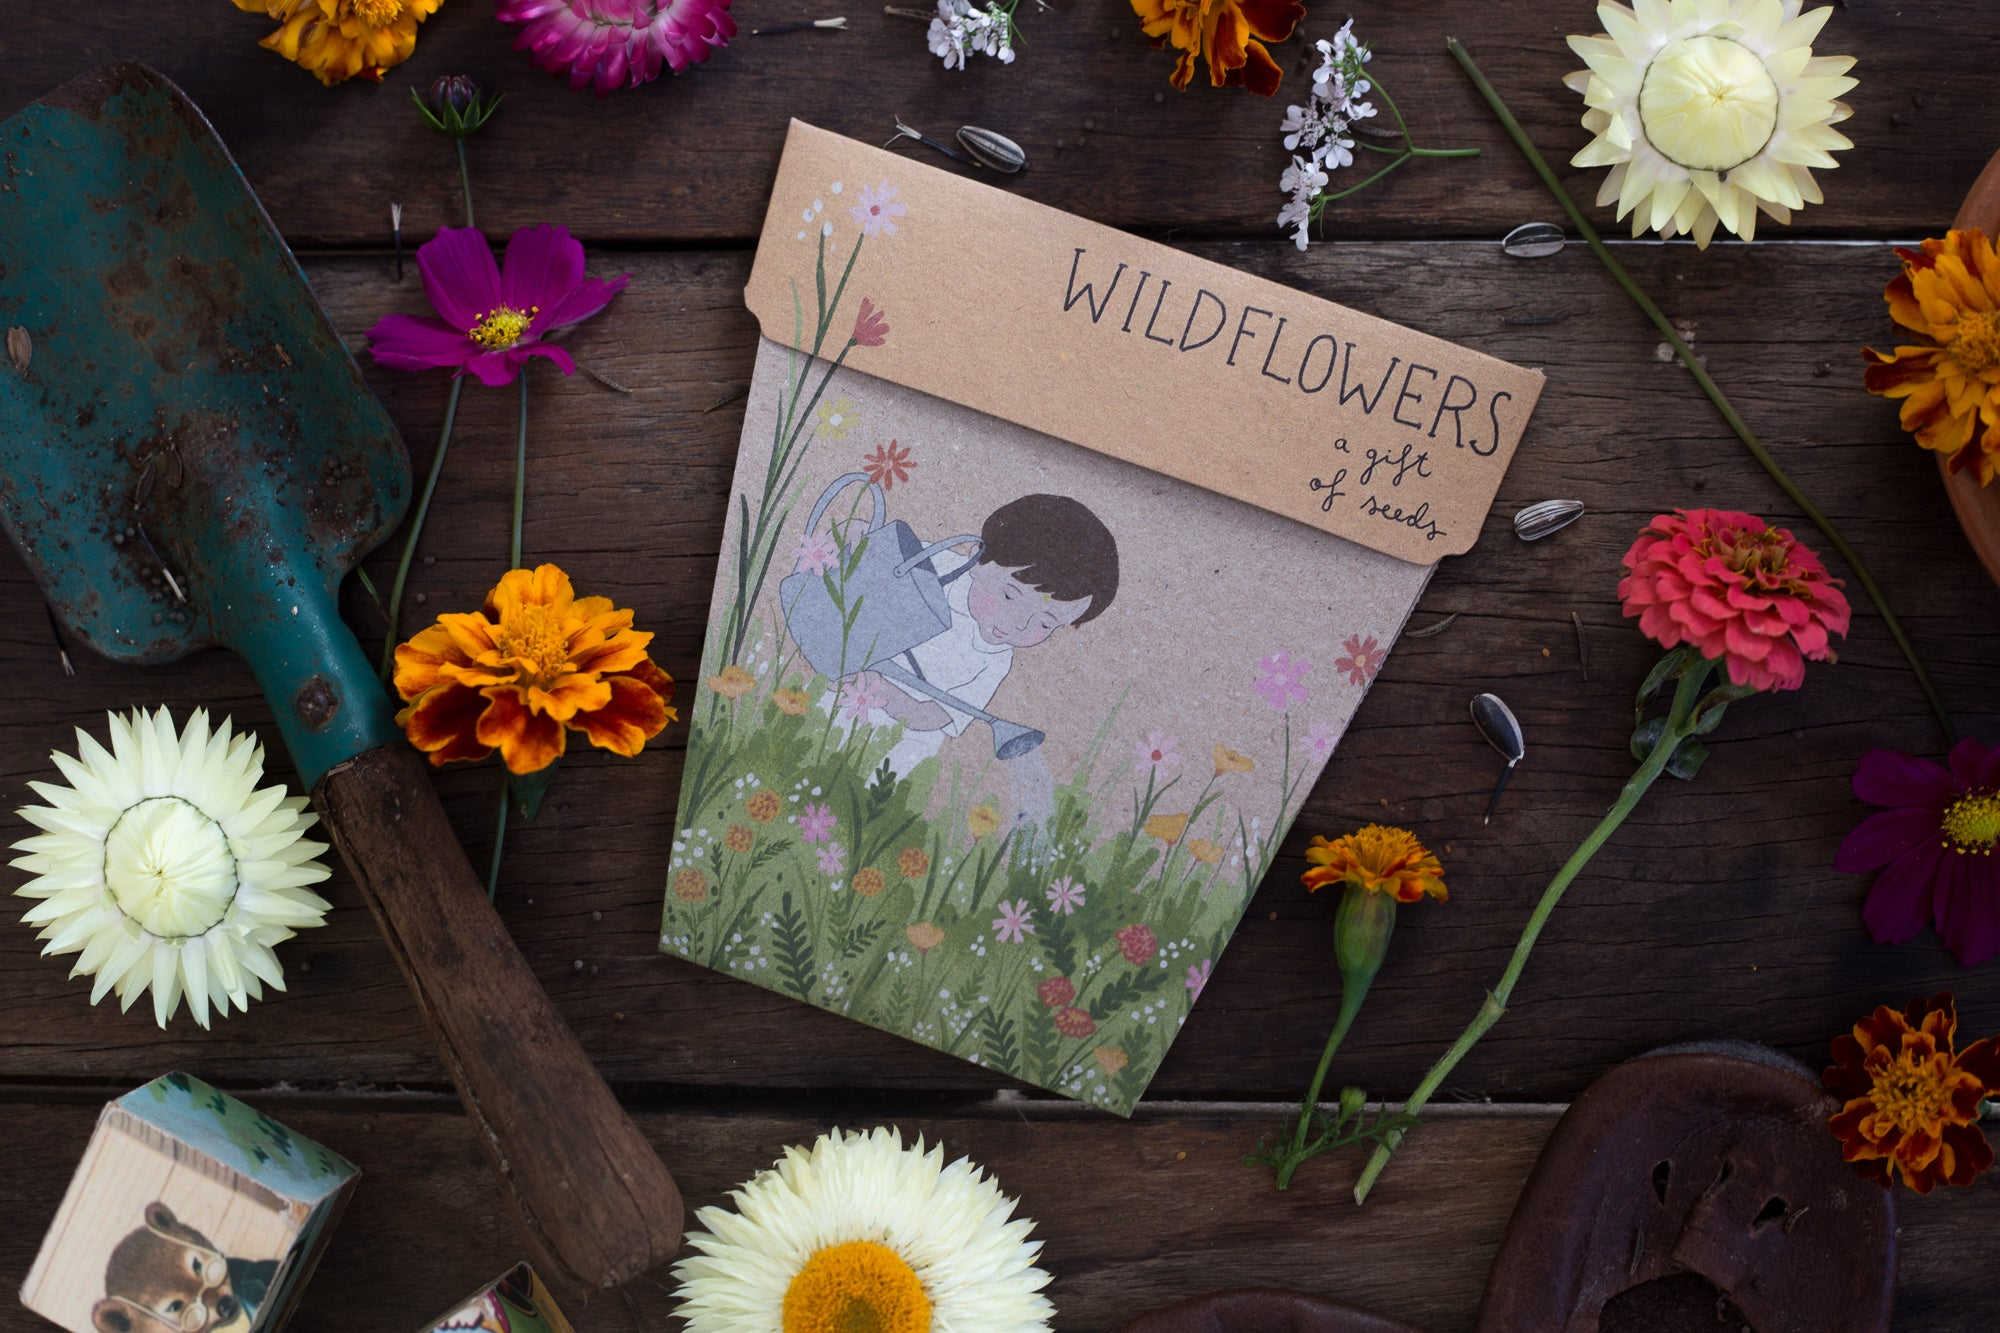 Card & Wildflowers Gift of Seeds